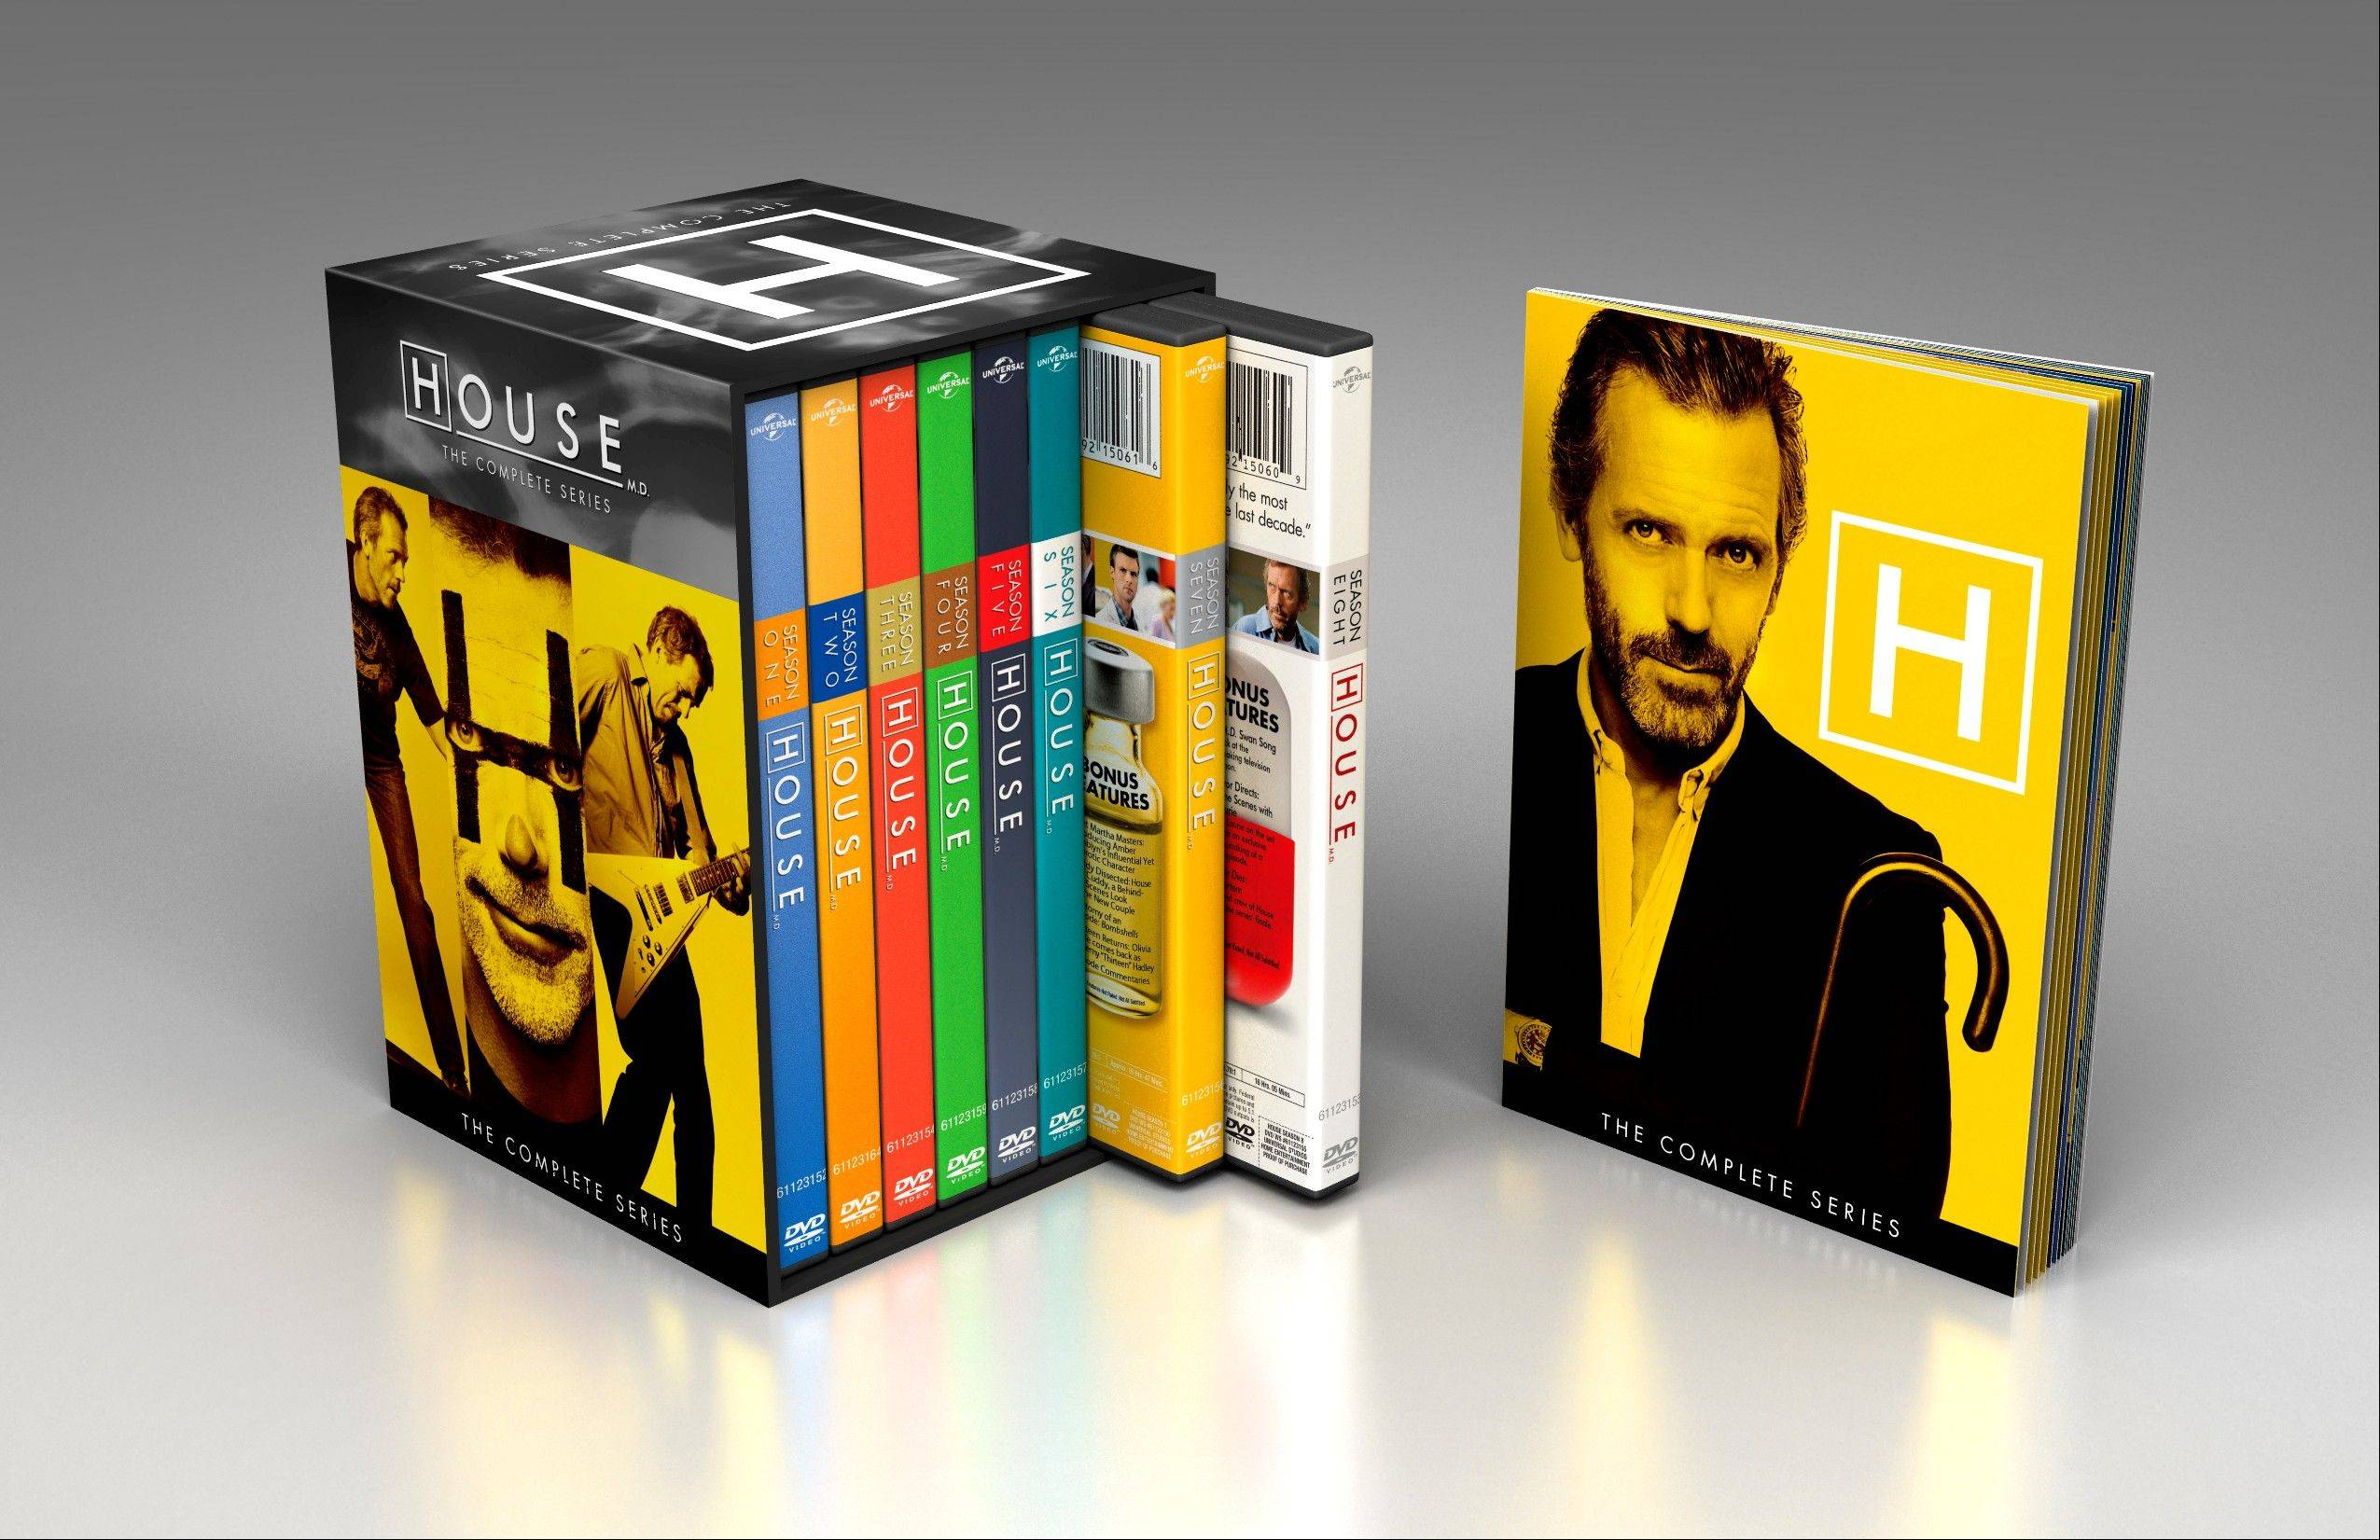 """House: The Complete Series"" features 41 discs with all 176 episodes of the Fox drama."